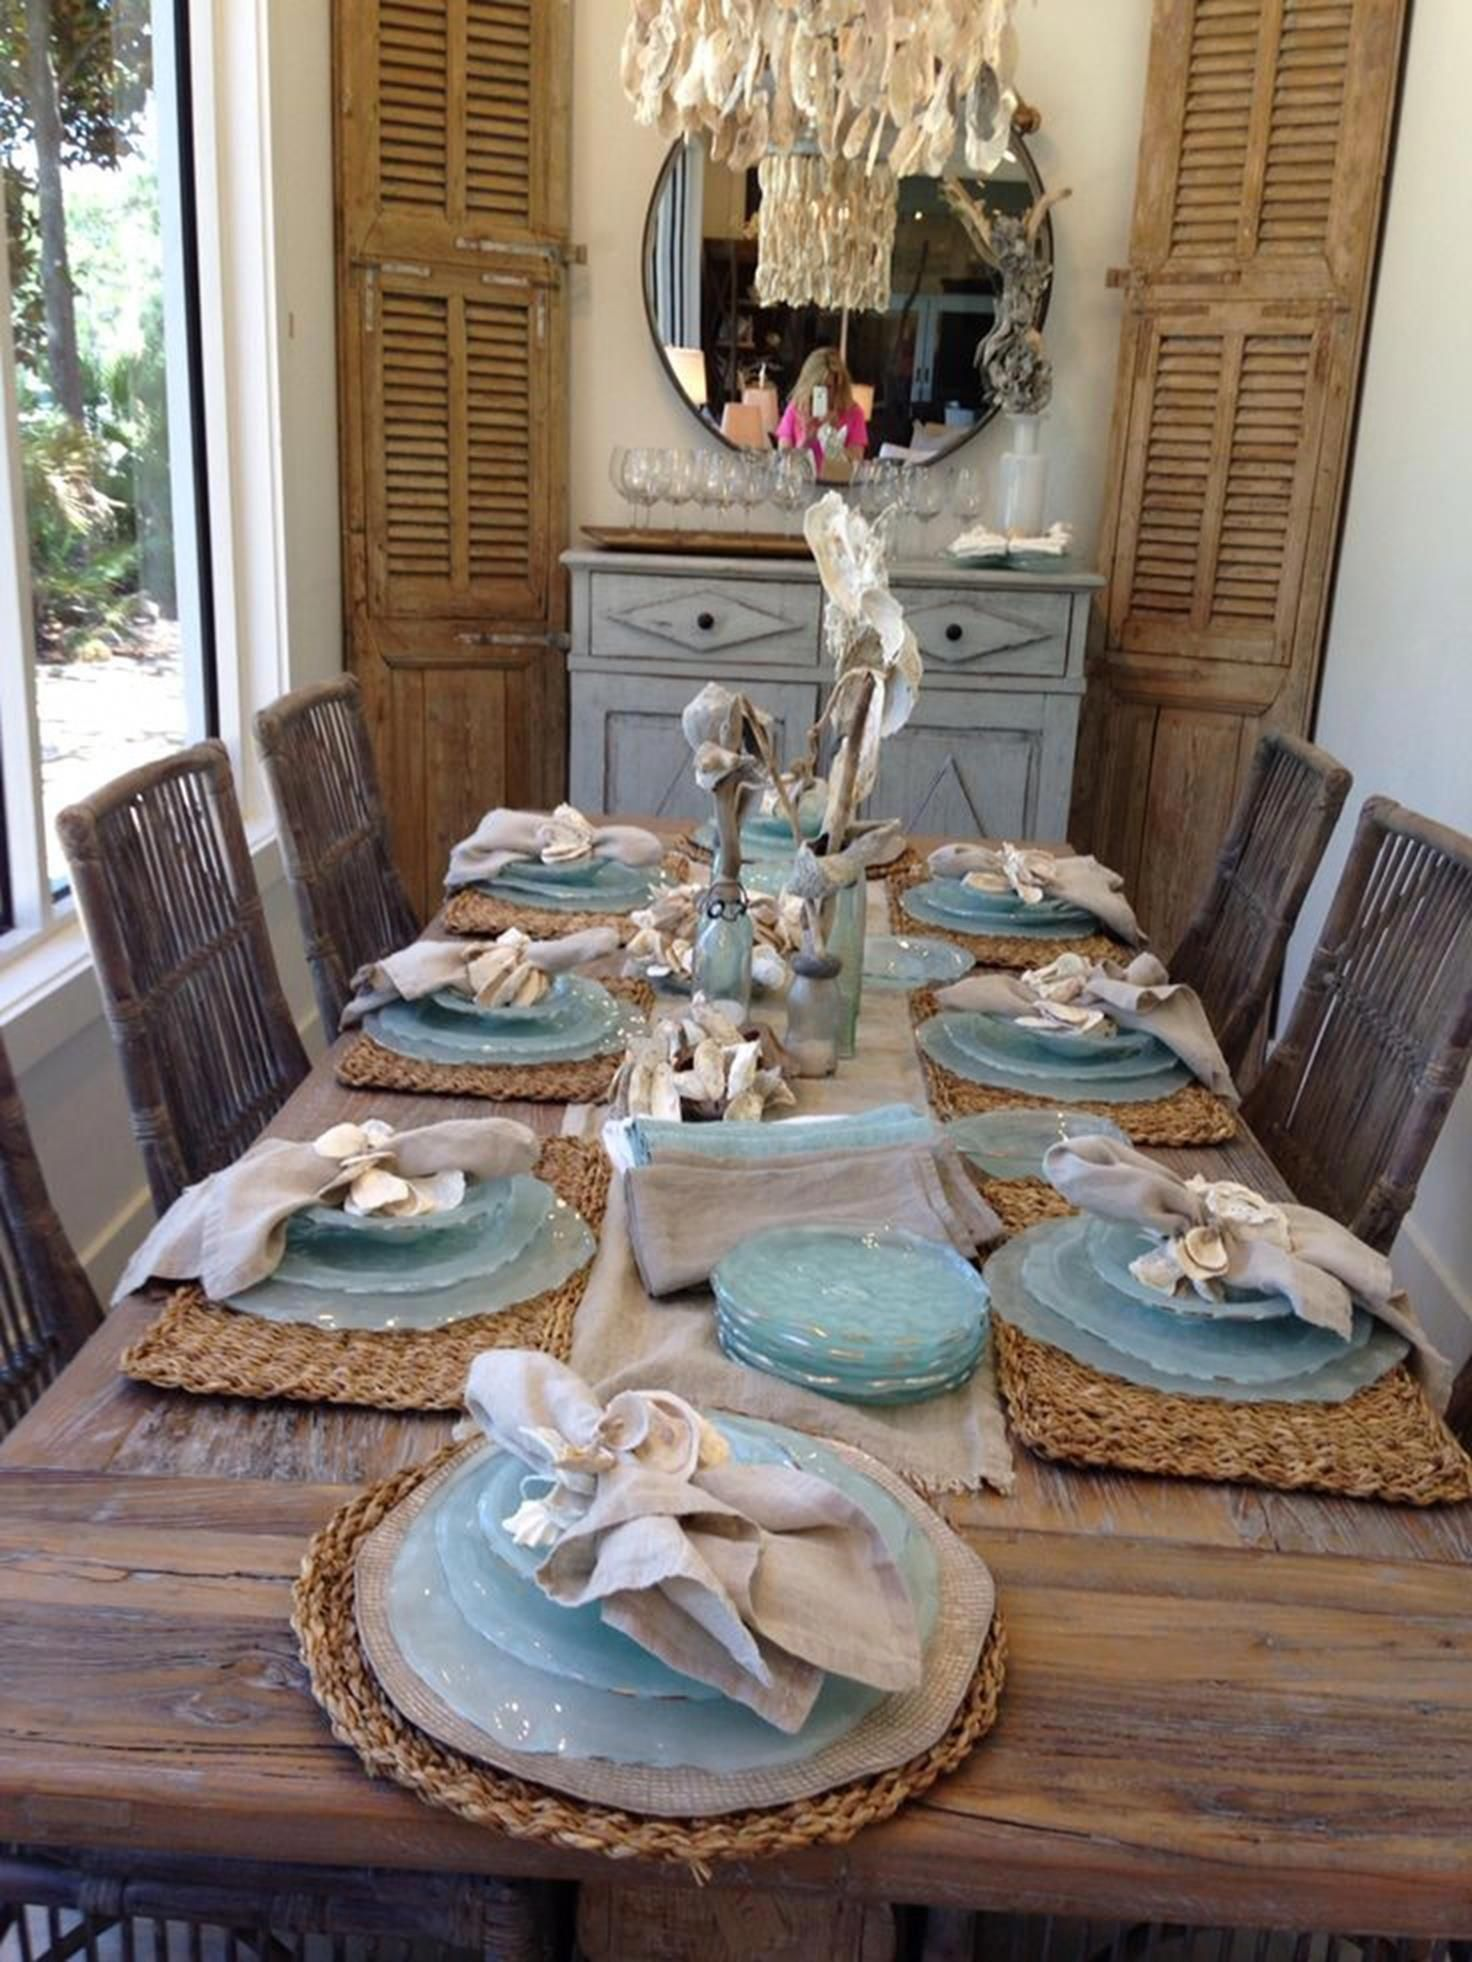 92 Coastal Tablescapes Ideas Tablescapes Coastal Decor Beach Decor